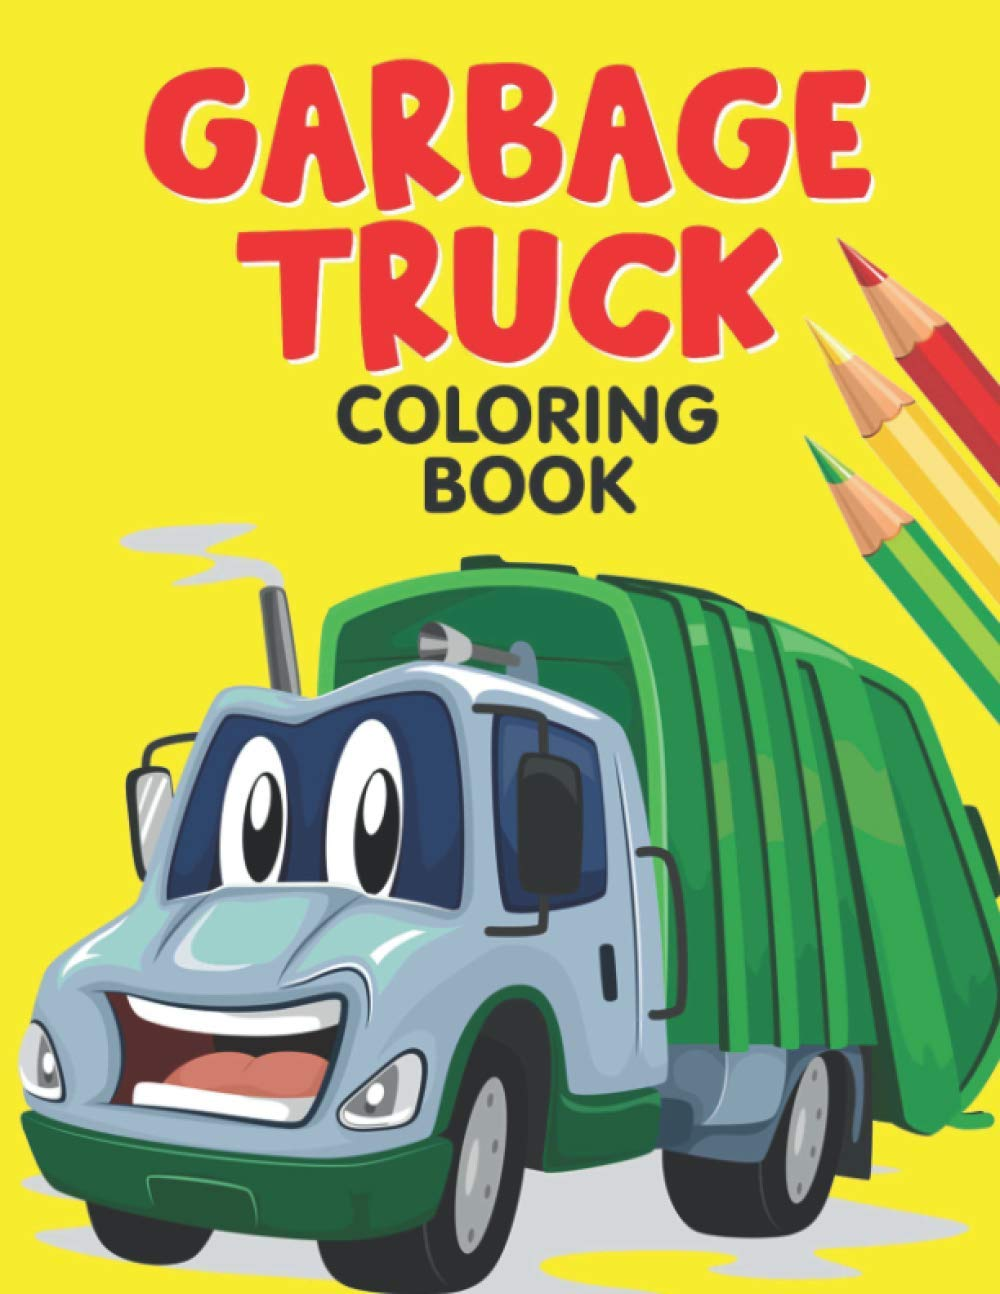 Garbage Truck Coloring Book: A Fun Coloring Pages for Kids who Love Trucks | Garbage, Dumb, Trash Truck Coloring Book for Toddler Boys, Girls